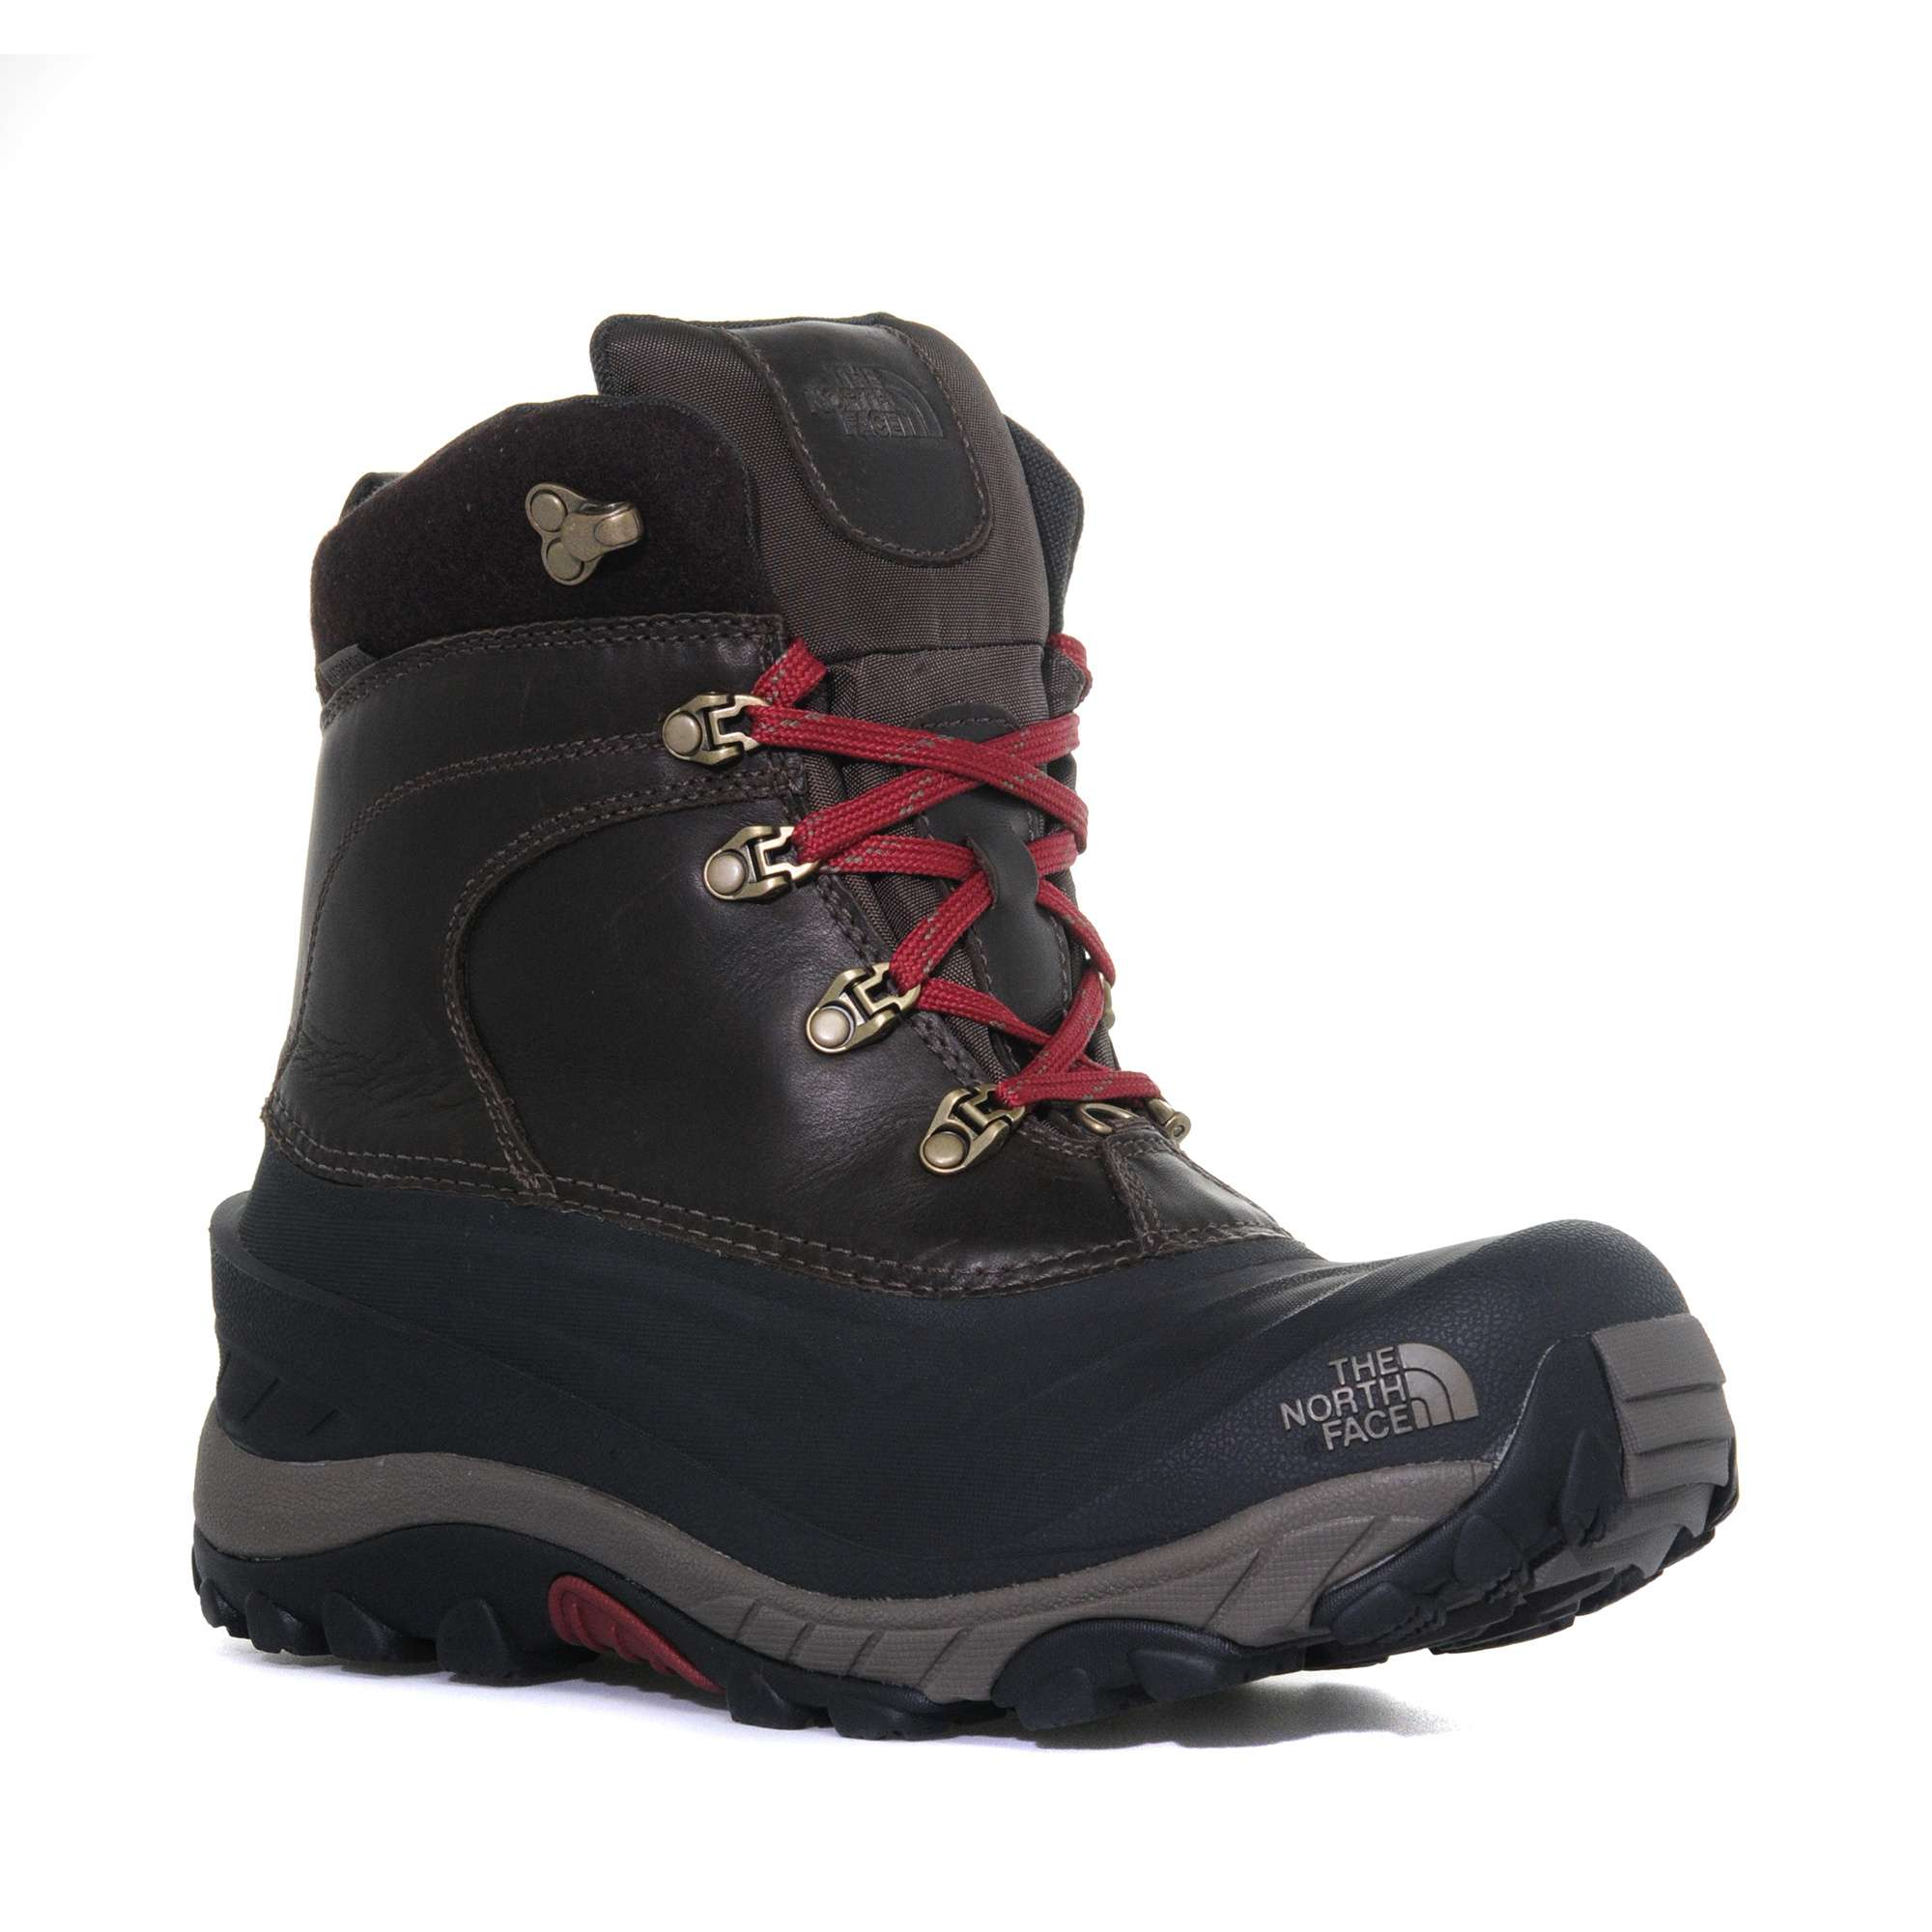 THE NORTH FACE Men's Chilkat II Luxe Winter Snow Boot